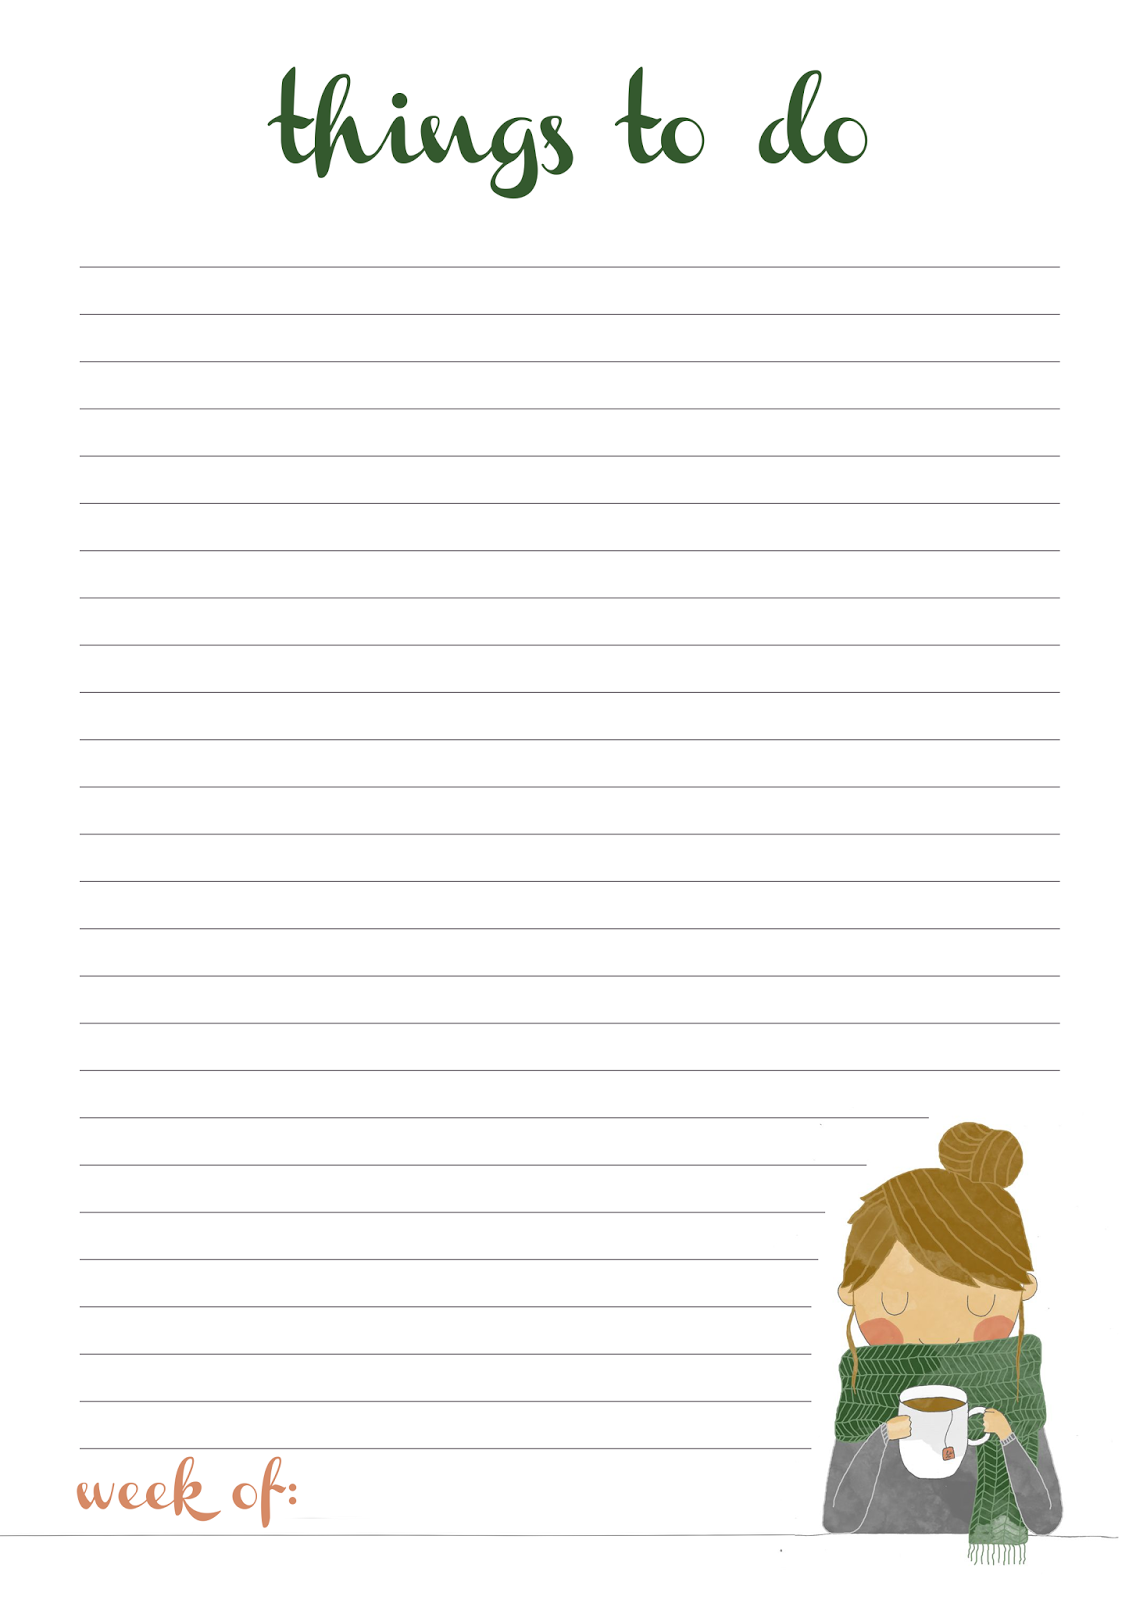 Occupation Mum Free Printable Download Things To Do Page And Stickers